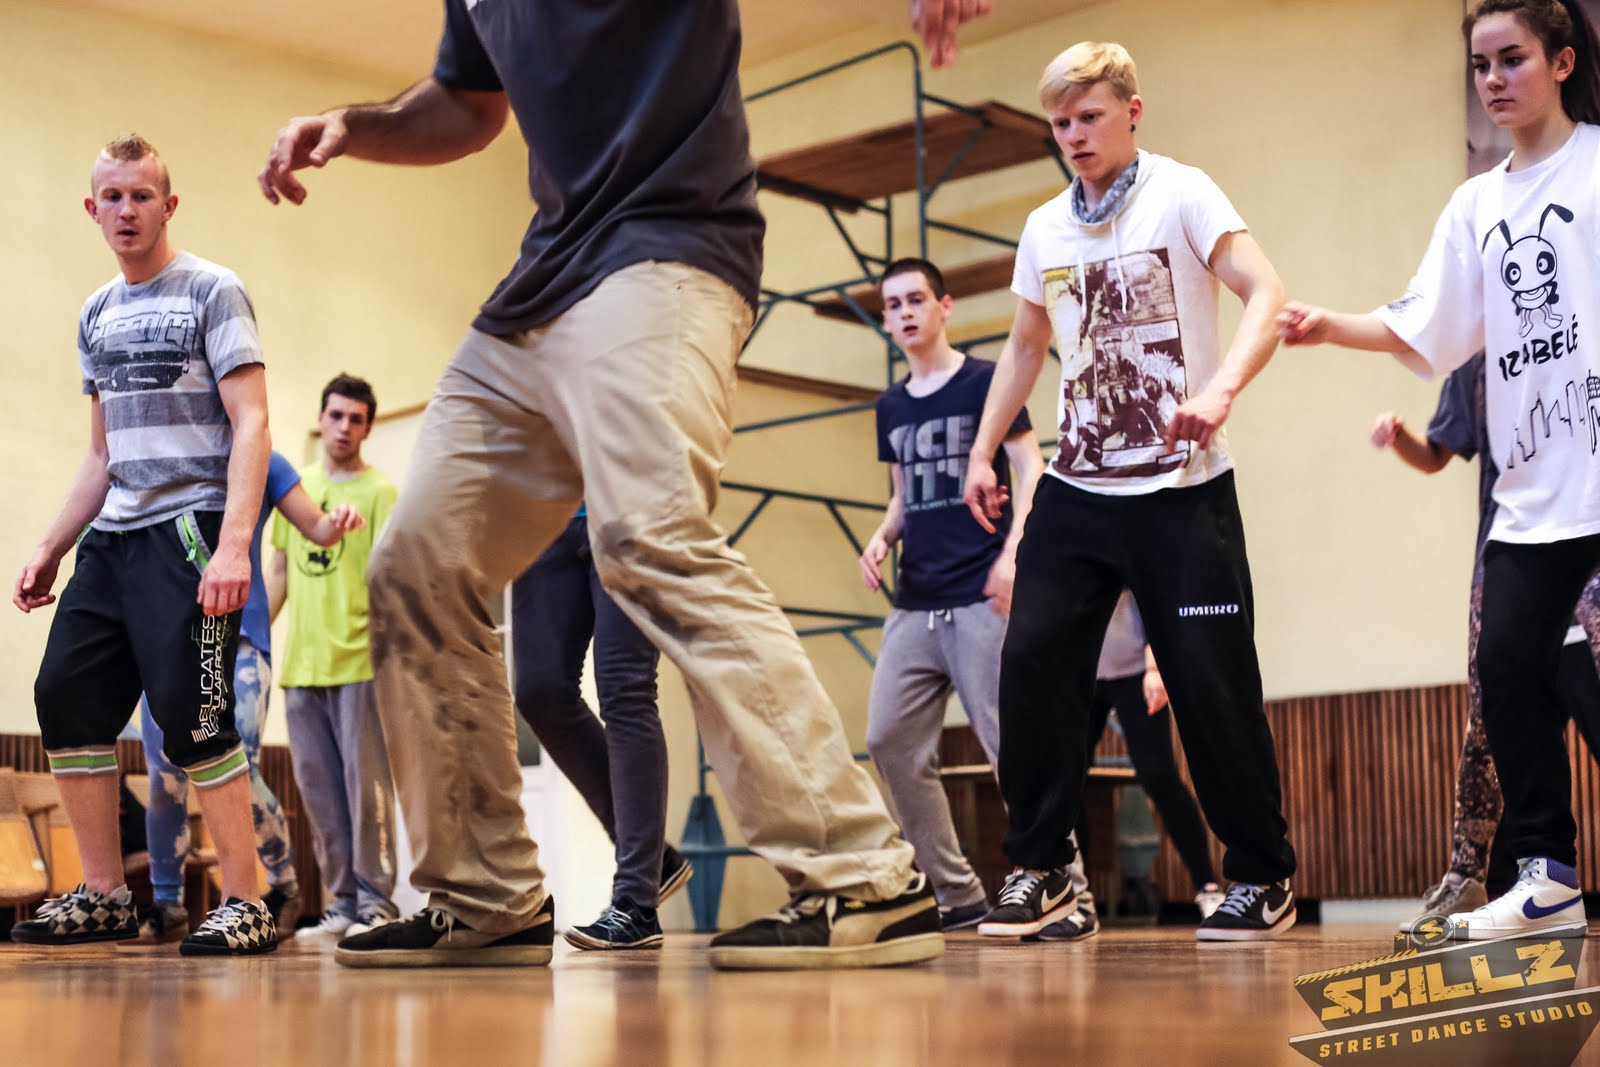 Workshop with Kusch (Russia) - IMG_4713.jpg